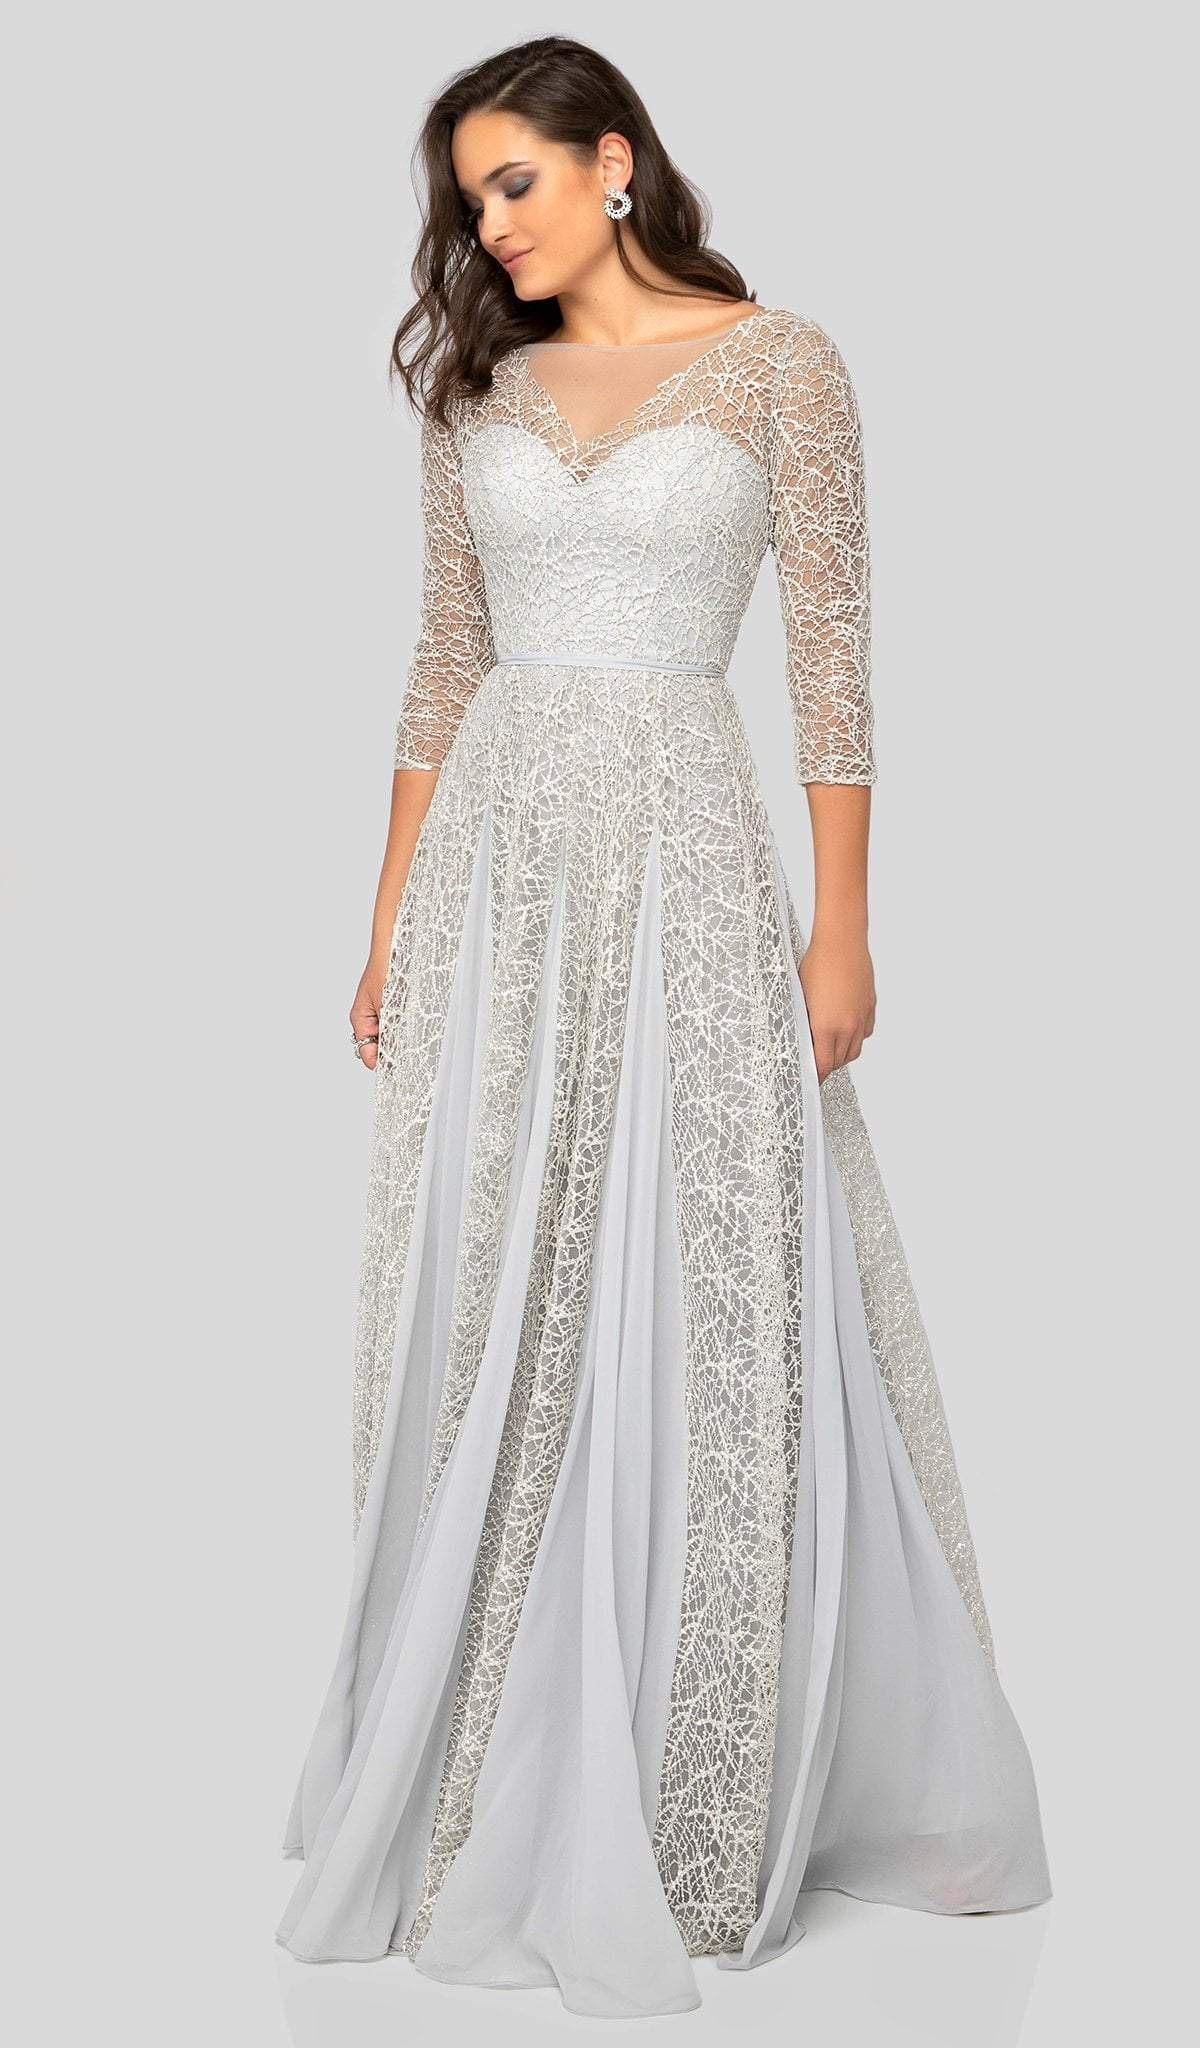 Terani Couture - 1911M9297 Illusion Bateau A-Line Evening Dress In White and Silver